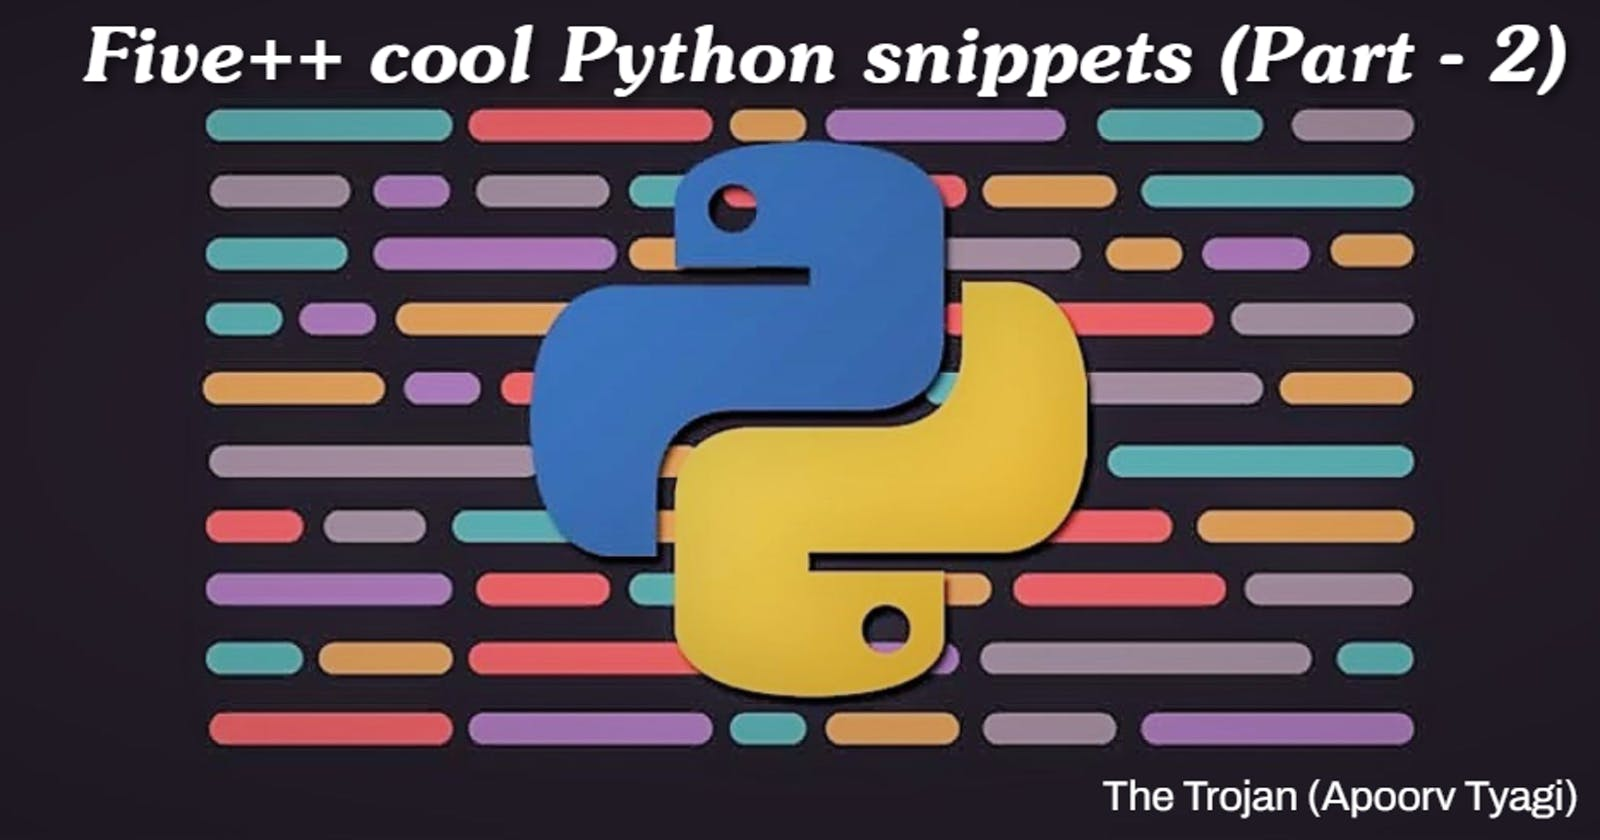 Five++ cool Python snippets (Part - 2)